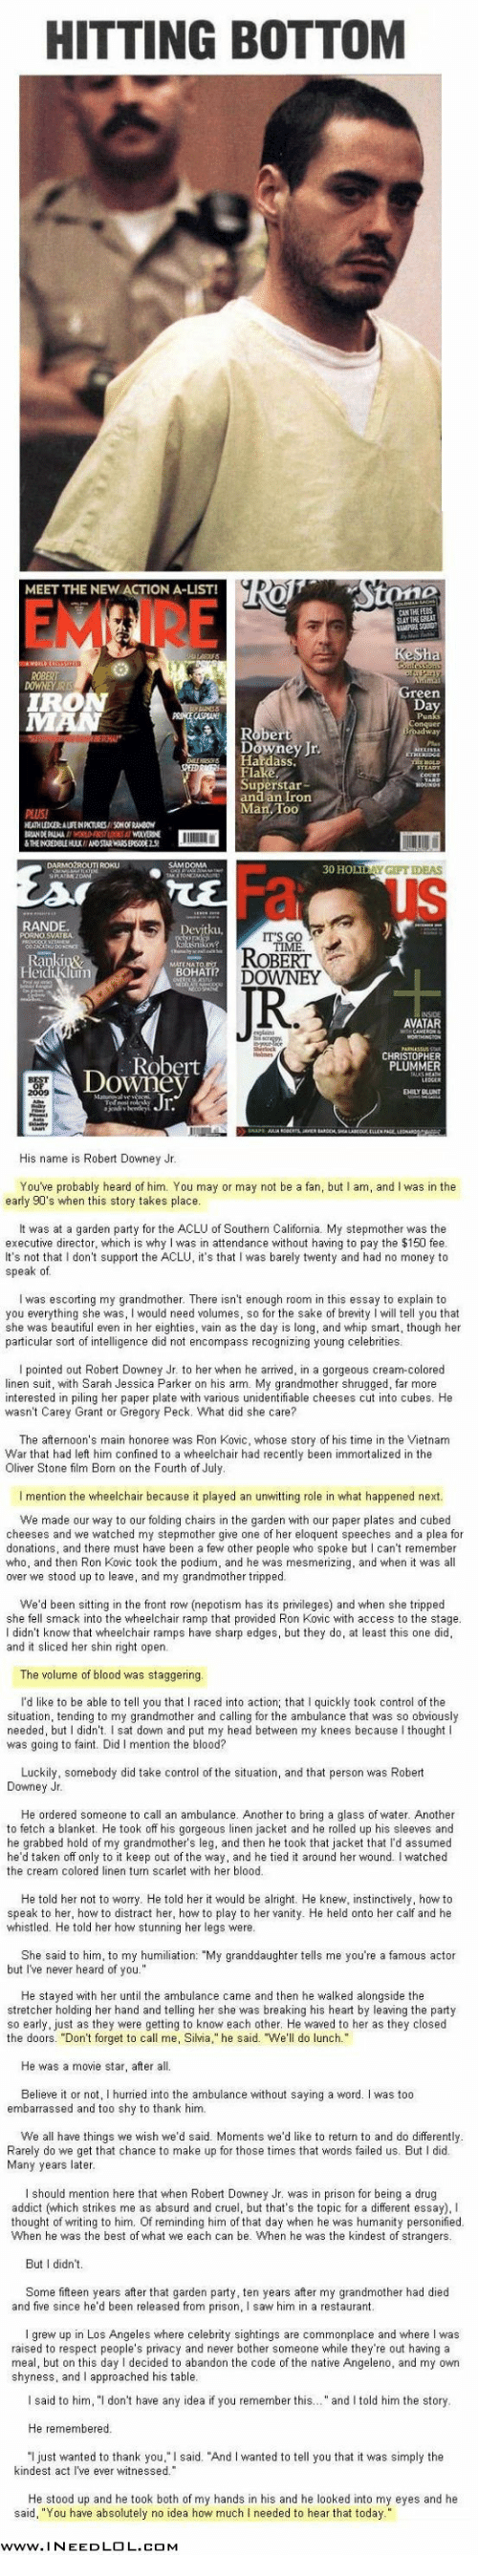 newsweek essay in our blood